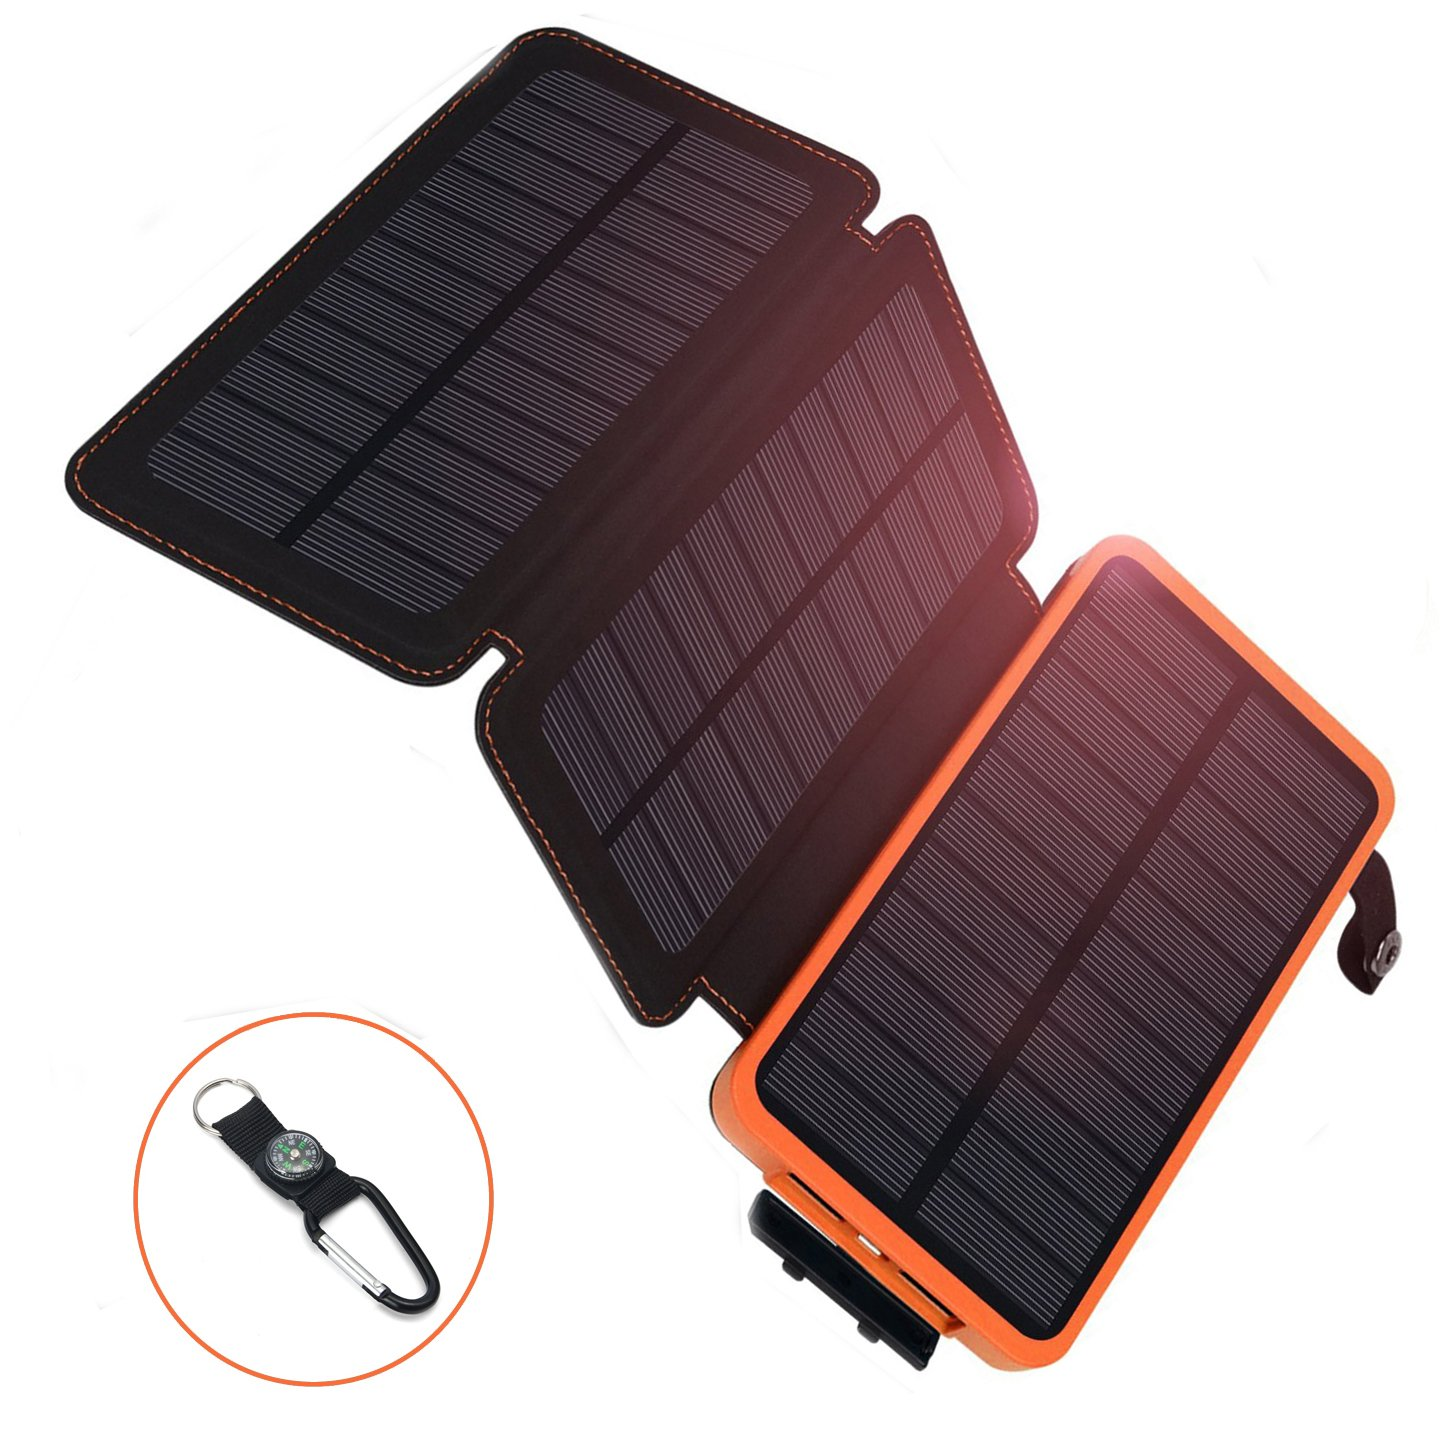 AZOT Solar Phone Charger Solar Power Bank Portable External Backup Battery Pack Dual USB with Flashlight fits iPhoneX, iPhone7, iPad, Samsung Cell Phone for Travelling Outdoor Camping (Orange)